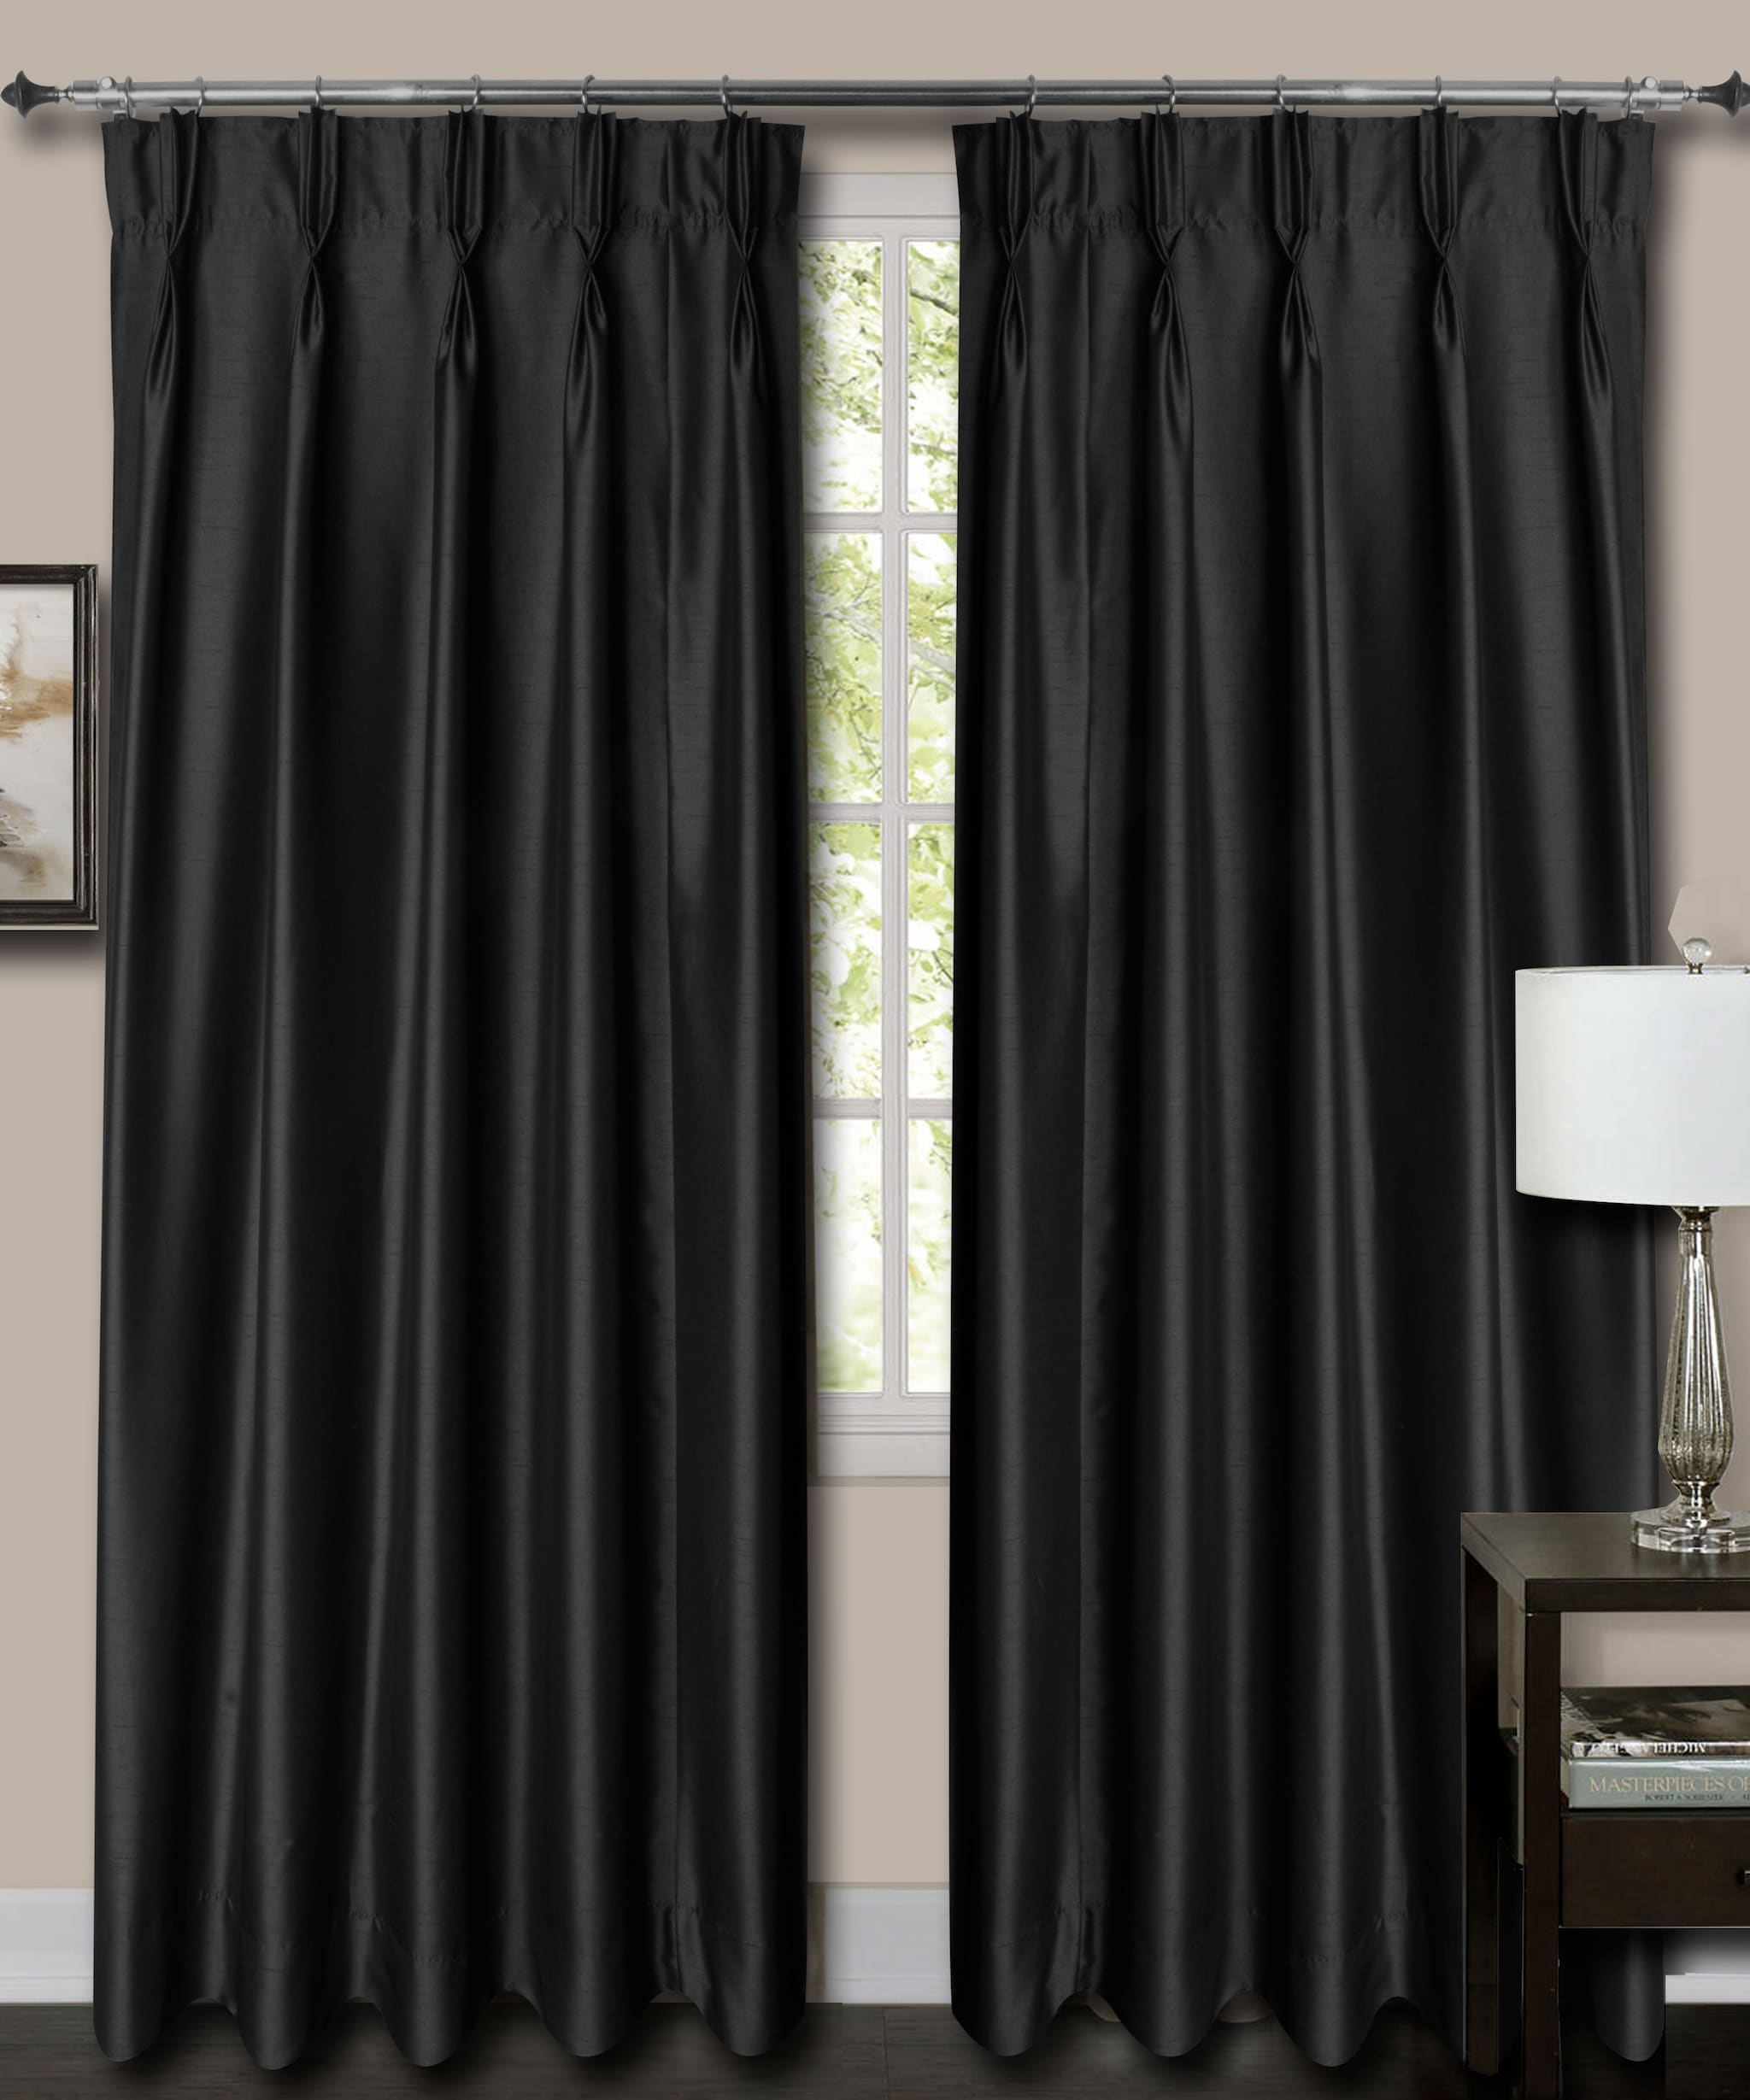 """French Pleat Top Black Faux Silk Dupioni Curtains. (24"""" Wide,4 Feet Long,Blackout Lining)"""